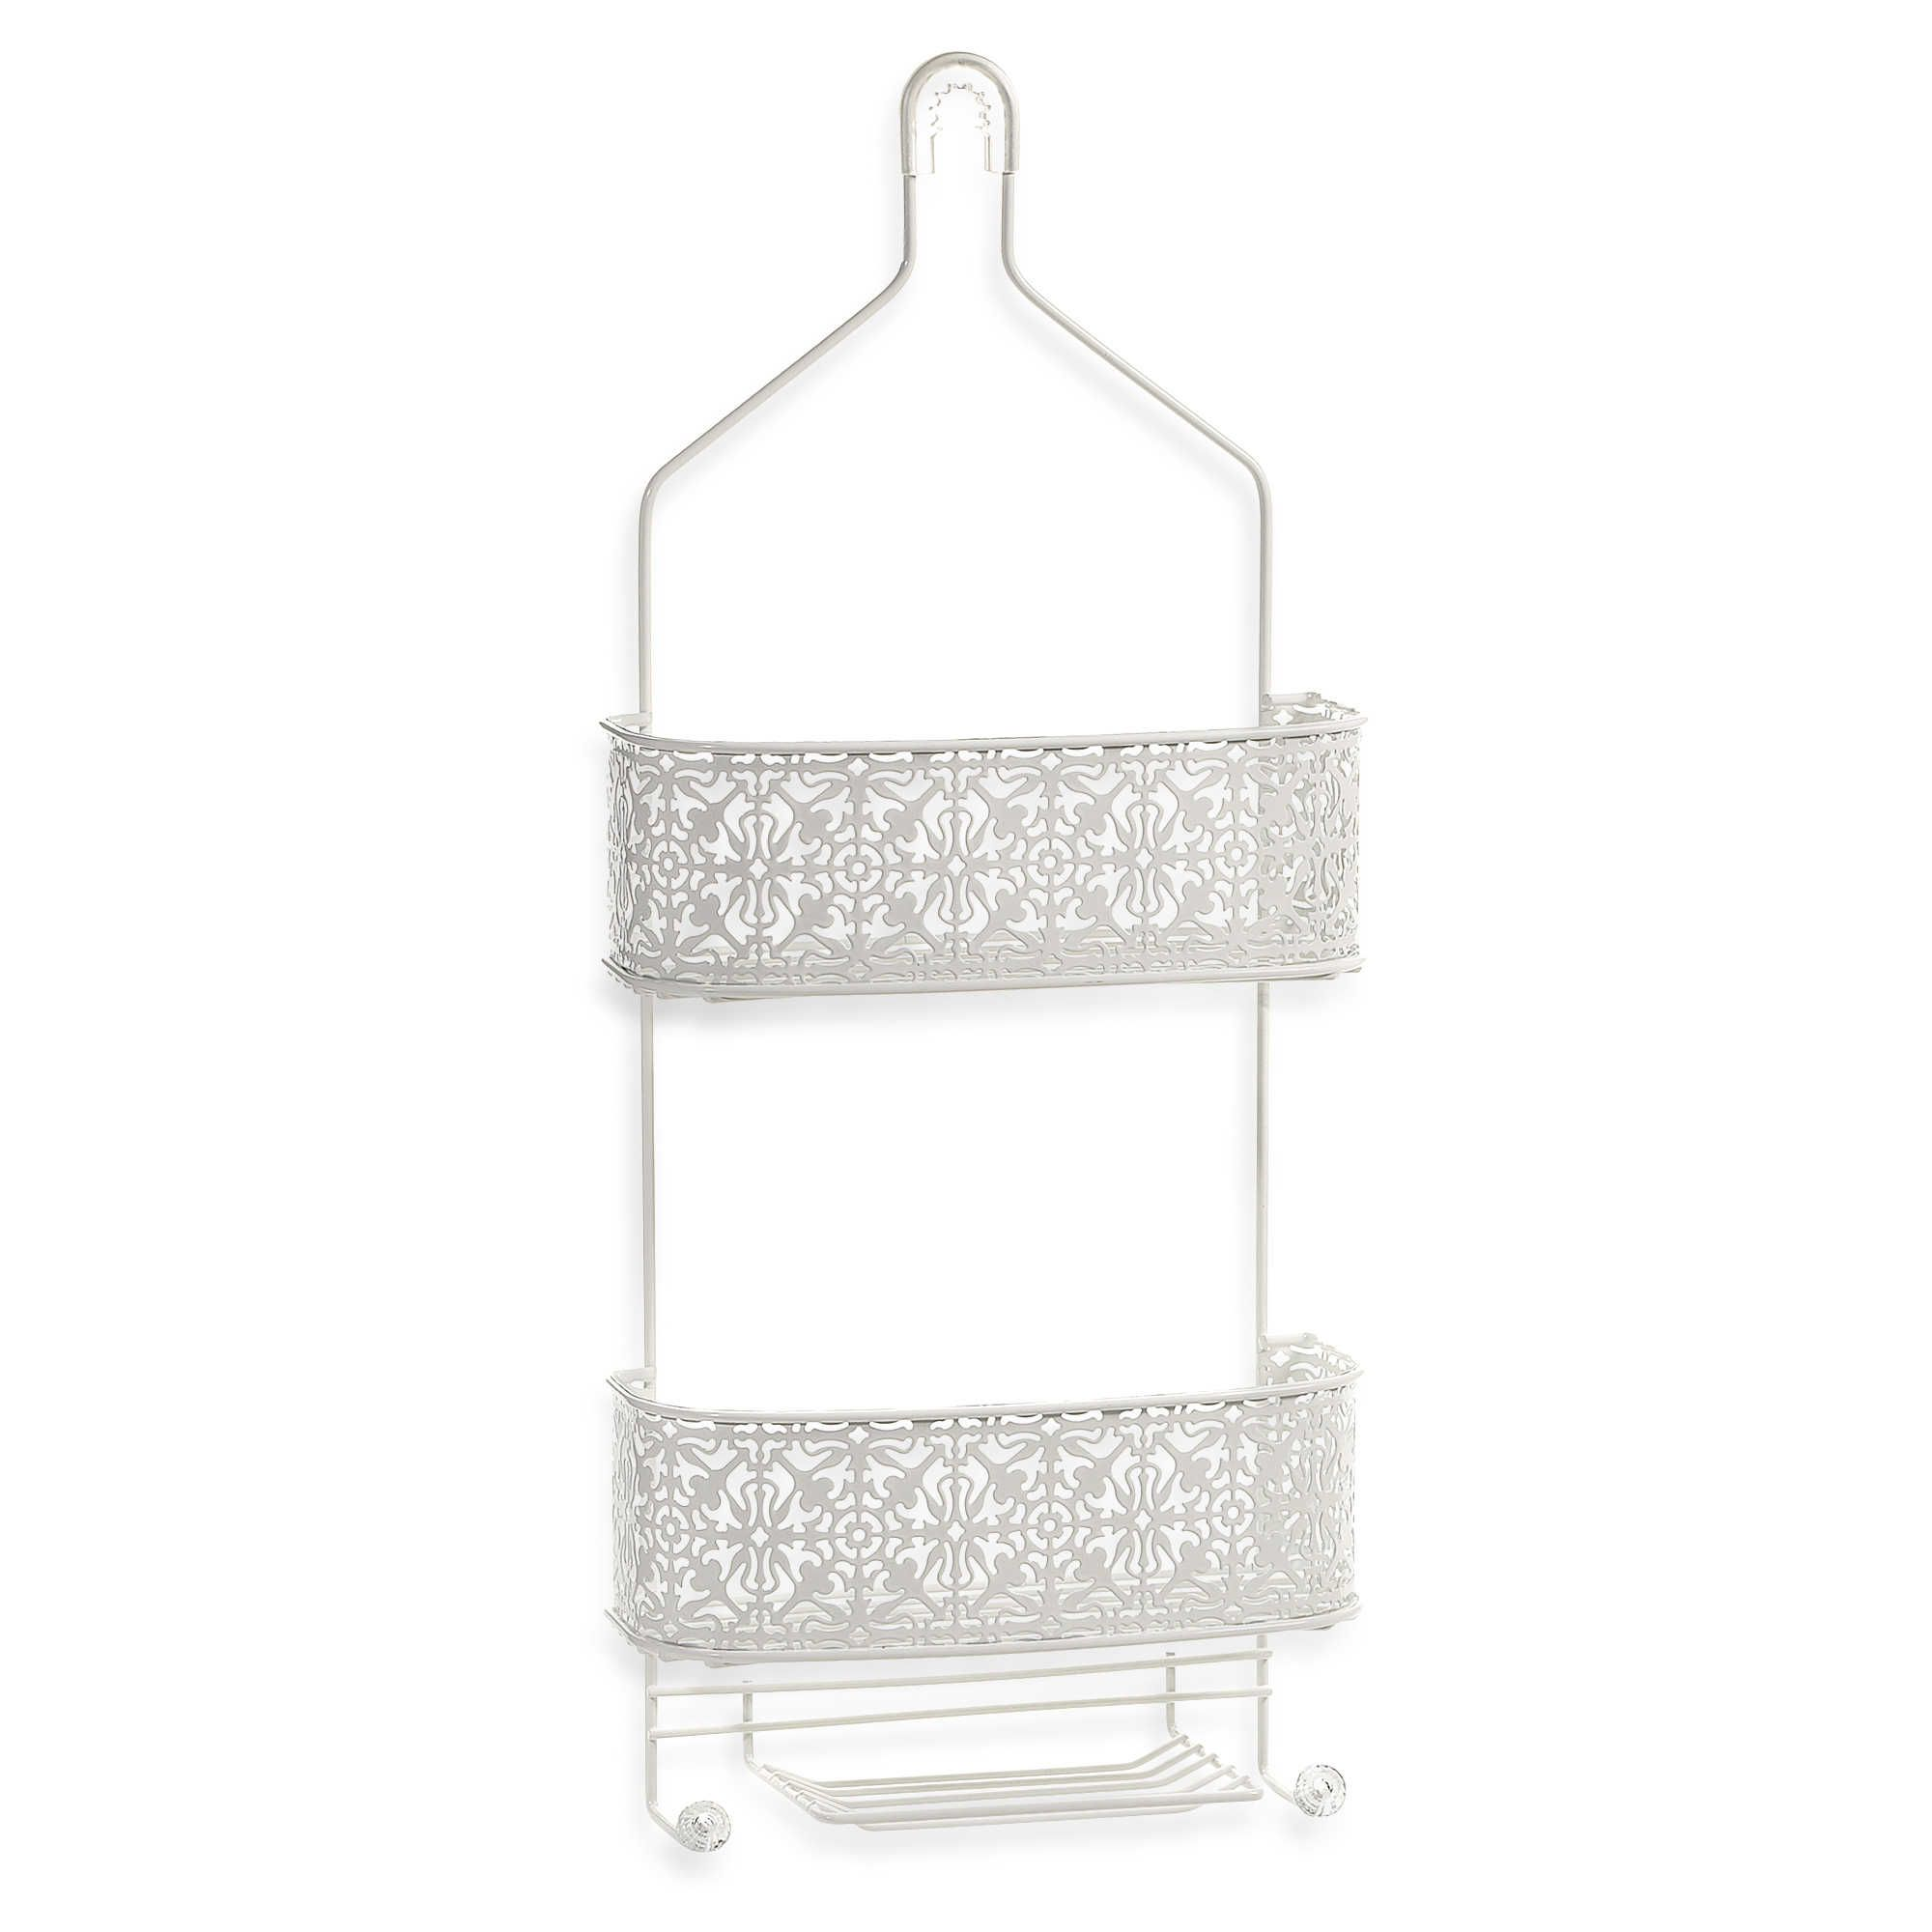 "Lace Shower Caddy | 10.75"" x 4"" x 25.25"""